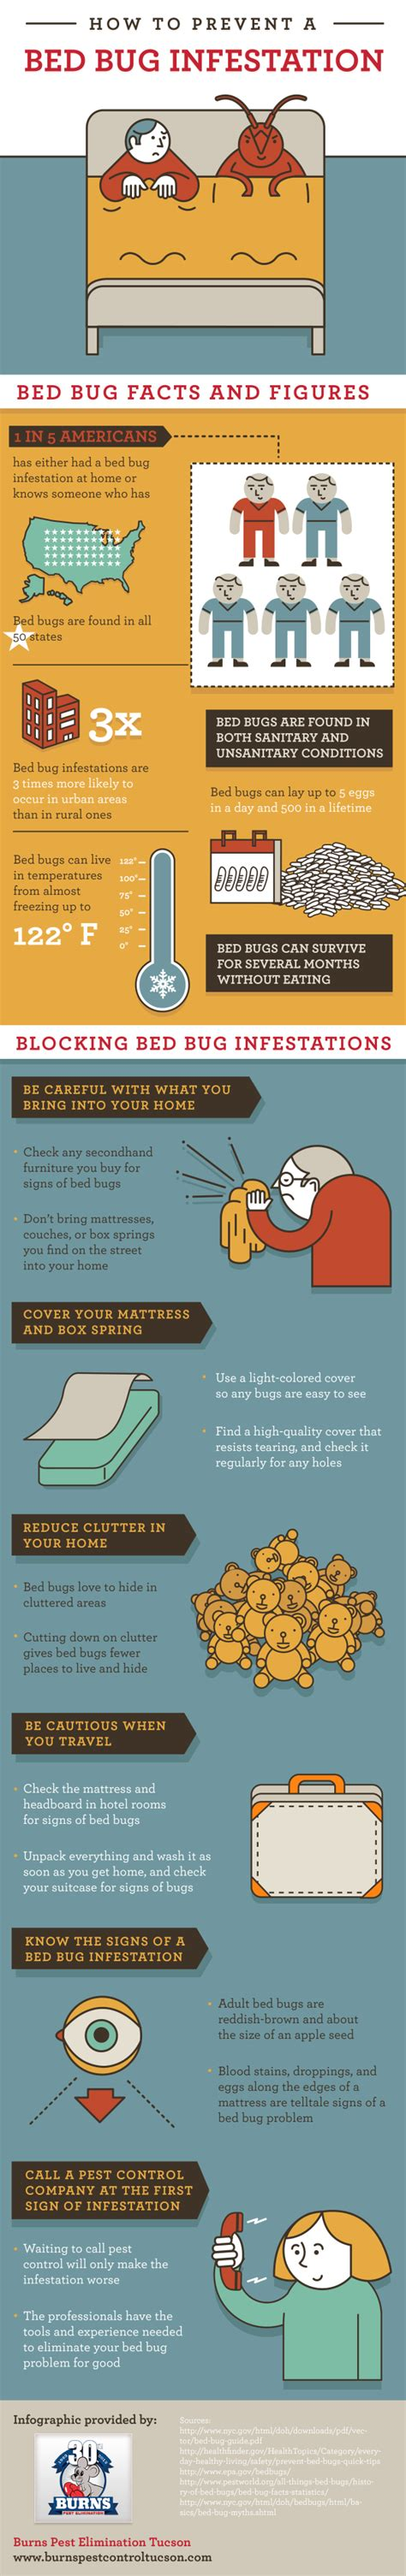 how to prevent bed bugs how to prevent a bed bug infestation infographic